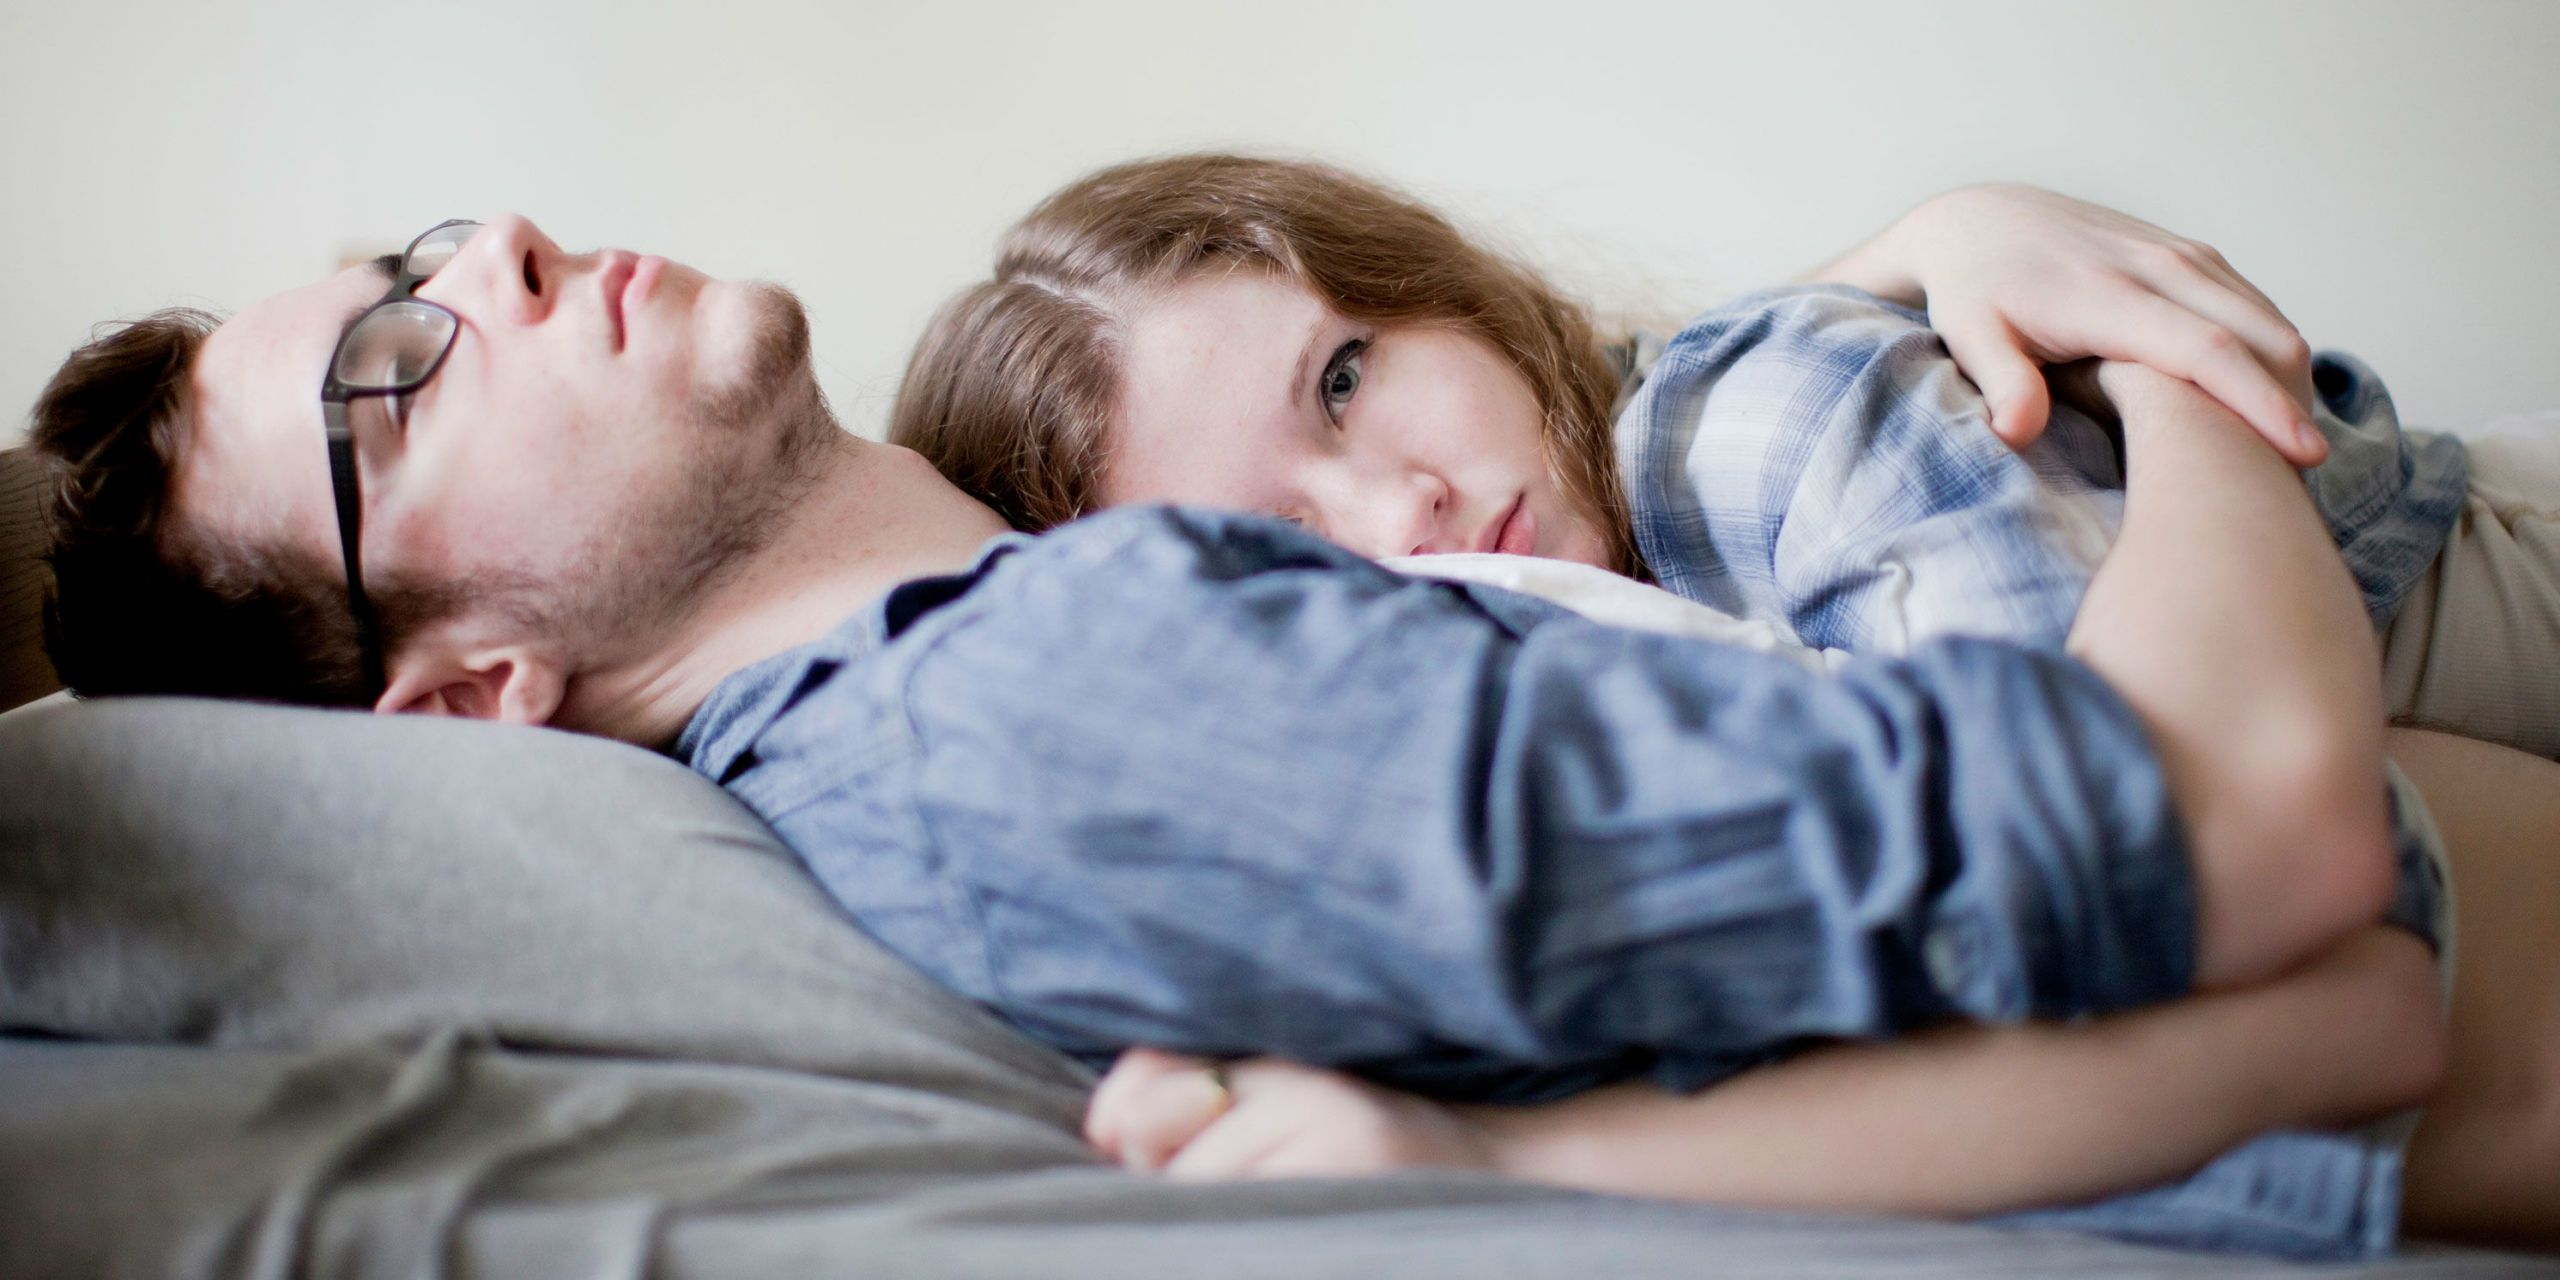 Finding a sexually compatible partner